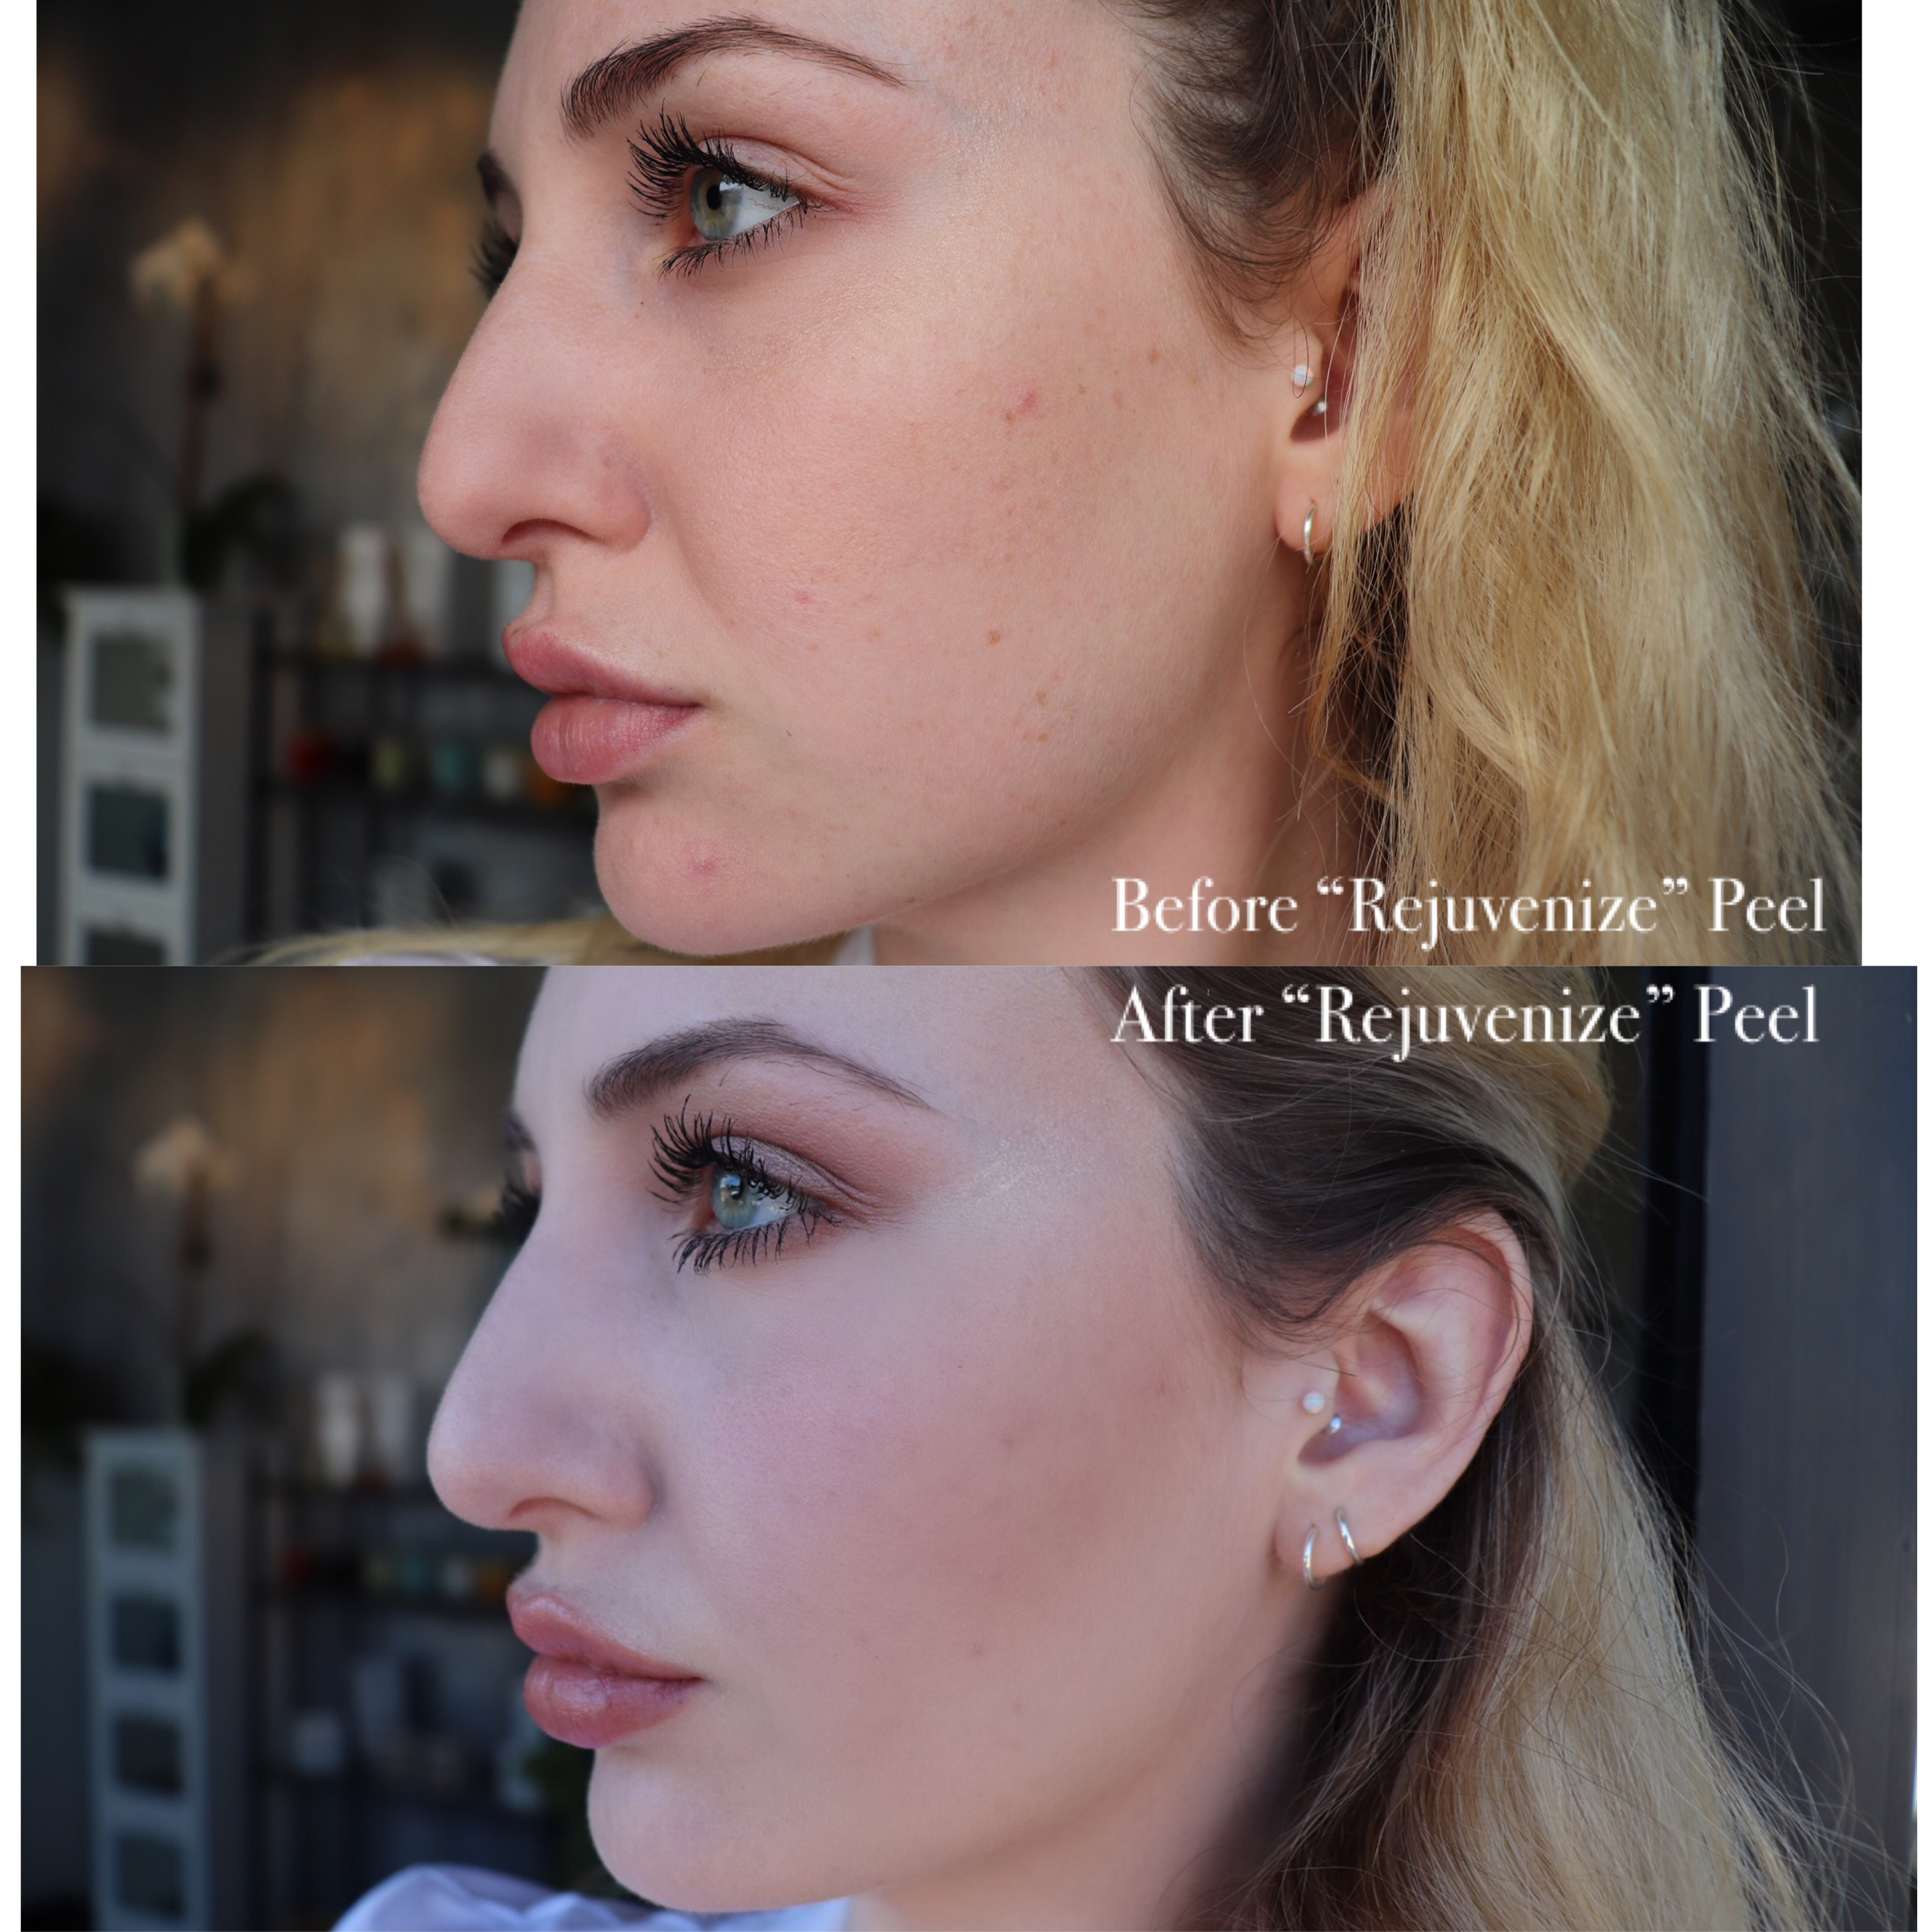 Revitalized peel, before and after Juvederm treatment at Neu Look Med Spa and Skin Center